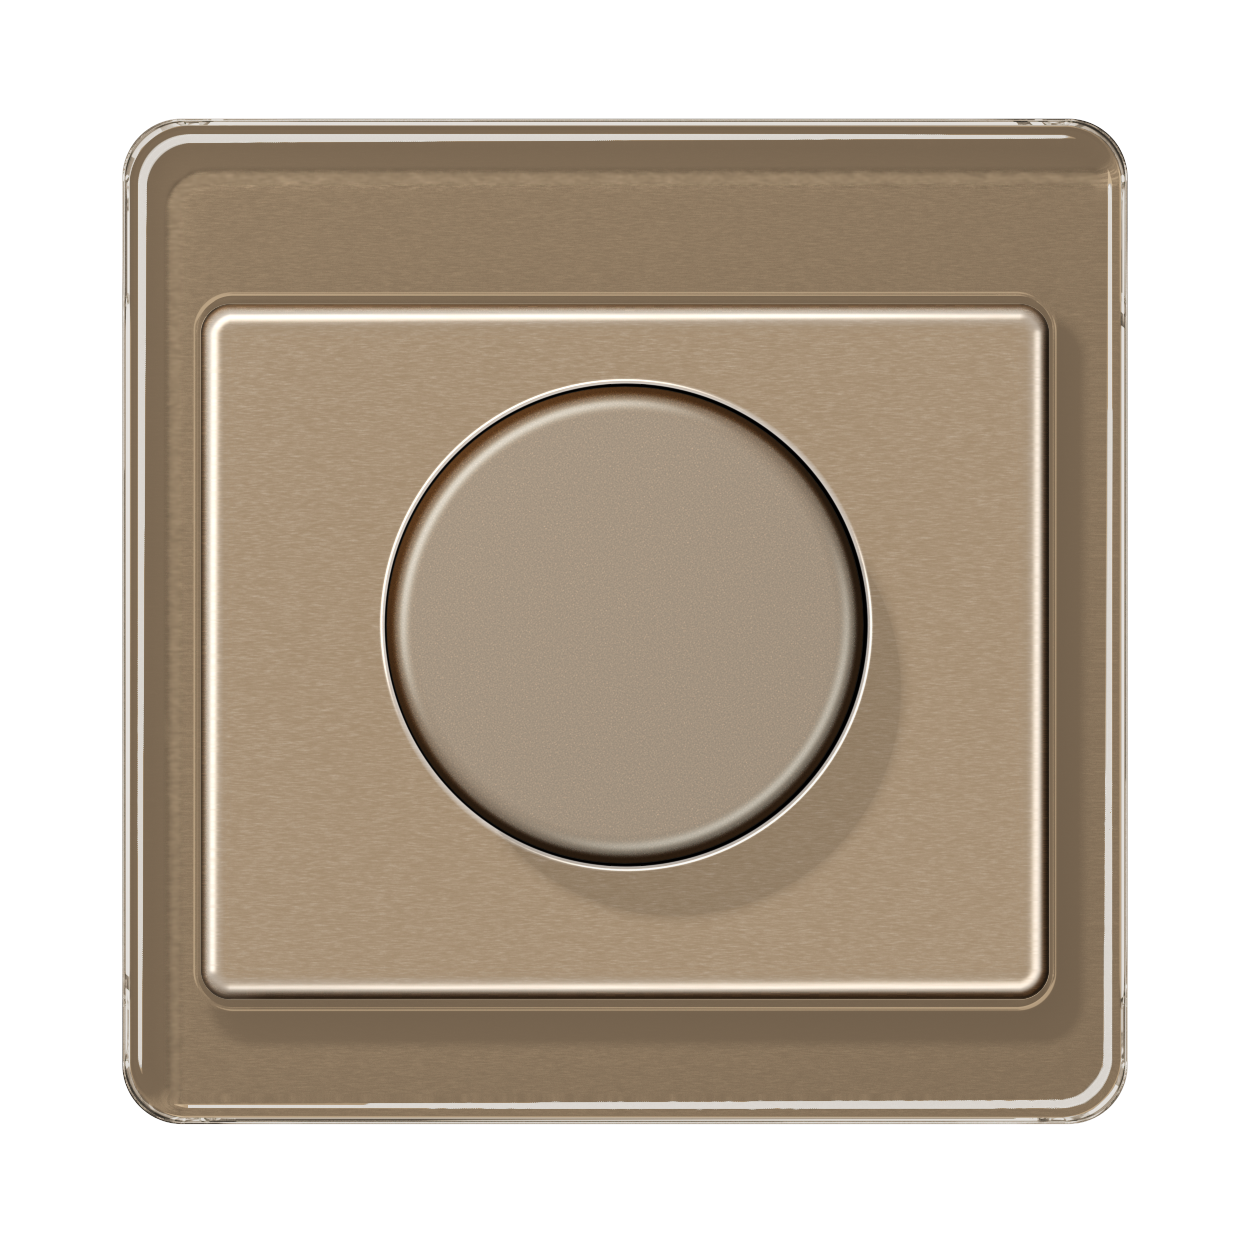 JUNG_SL500_gold-bronze_dimmer